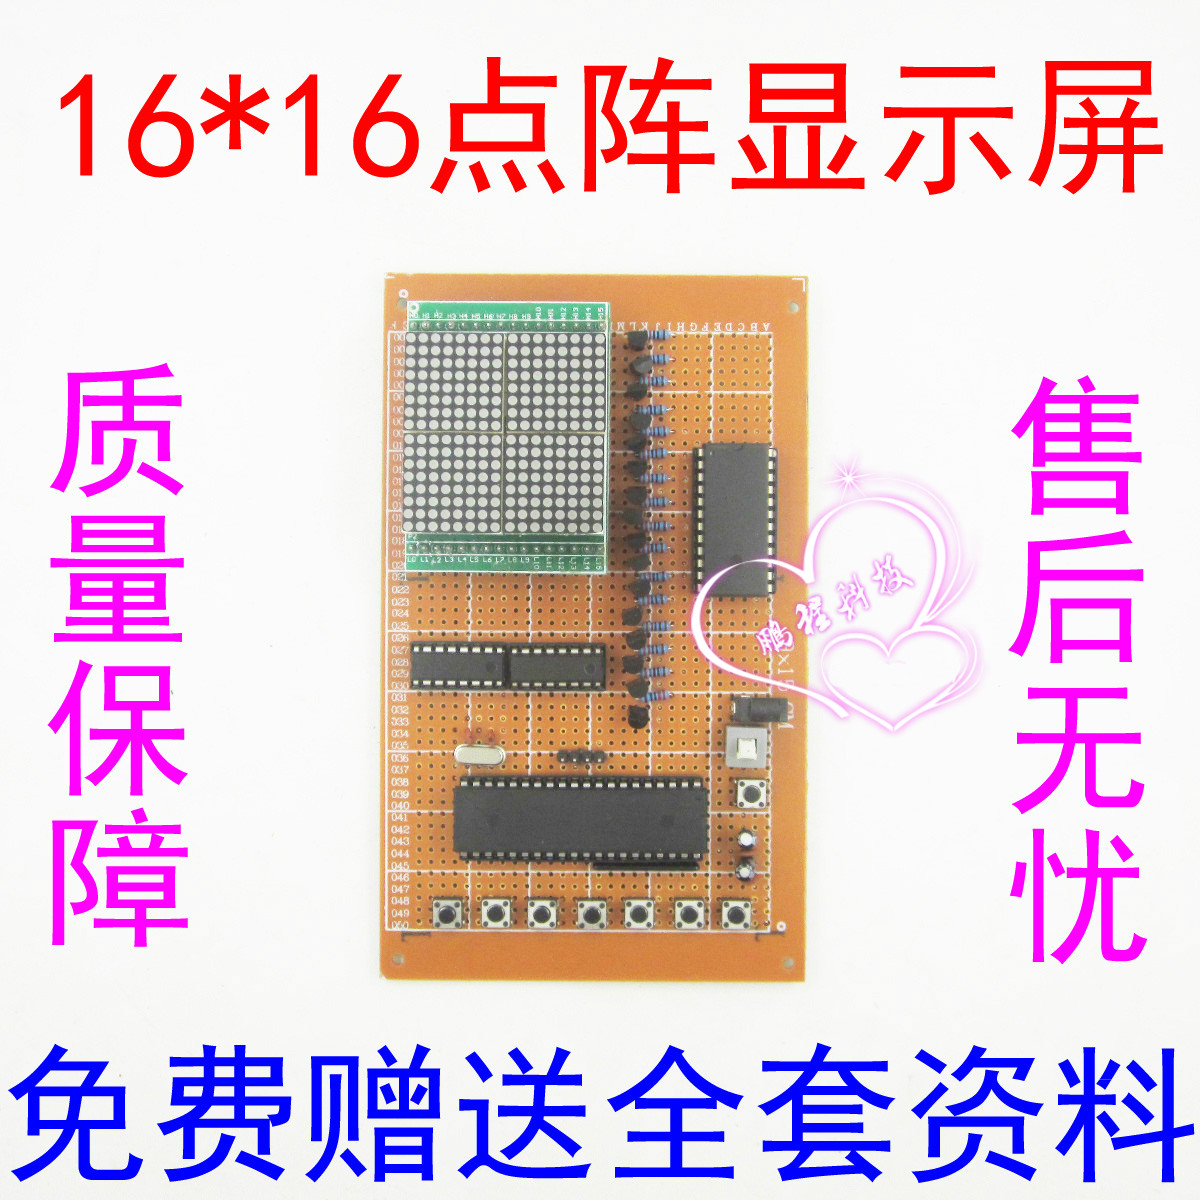 Home Appliance Parts Design Wireless 4 Way Remote Control Based On The Infrared Remote Control Switch Of 51 Single Chip Microcomputer